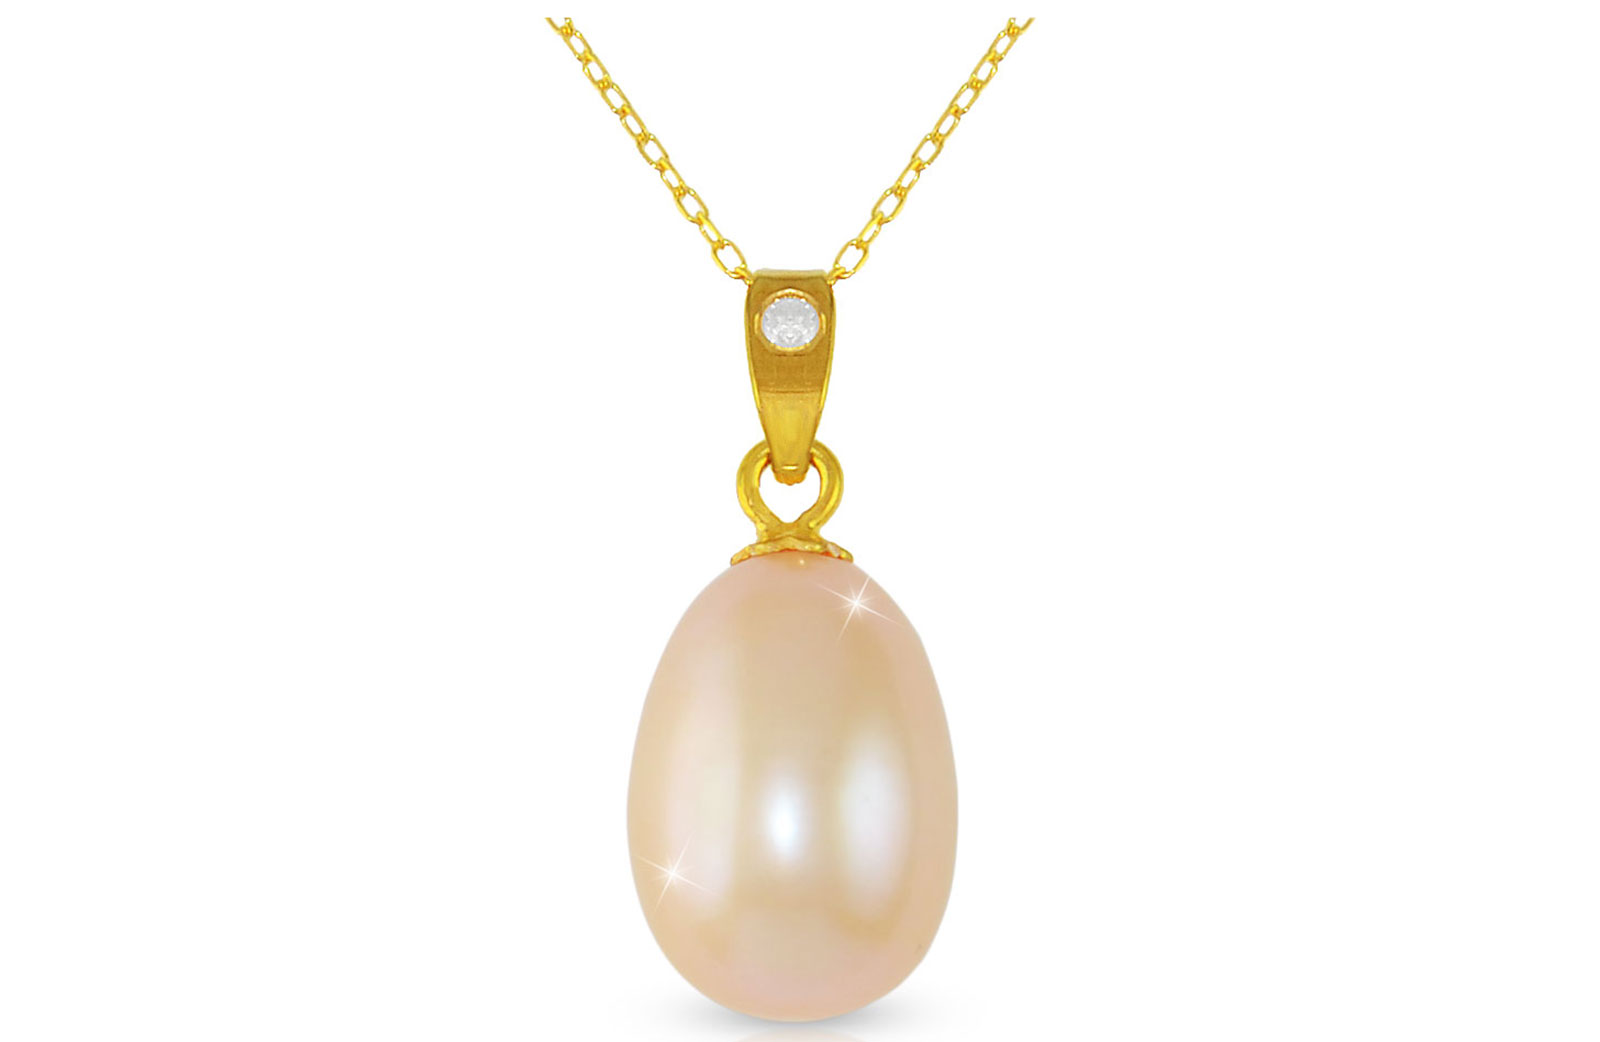 Vera Perla Pink Baroque Pearl 18K Gold Pendant with 18K Gold Chain